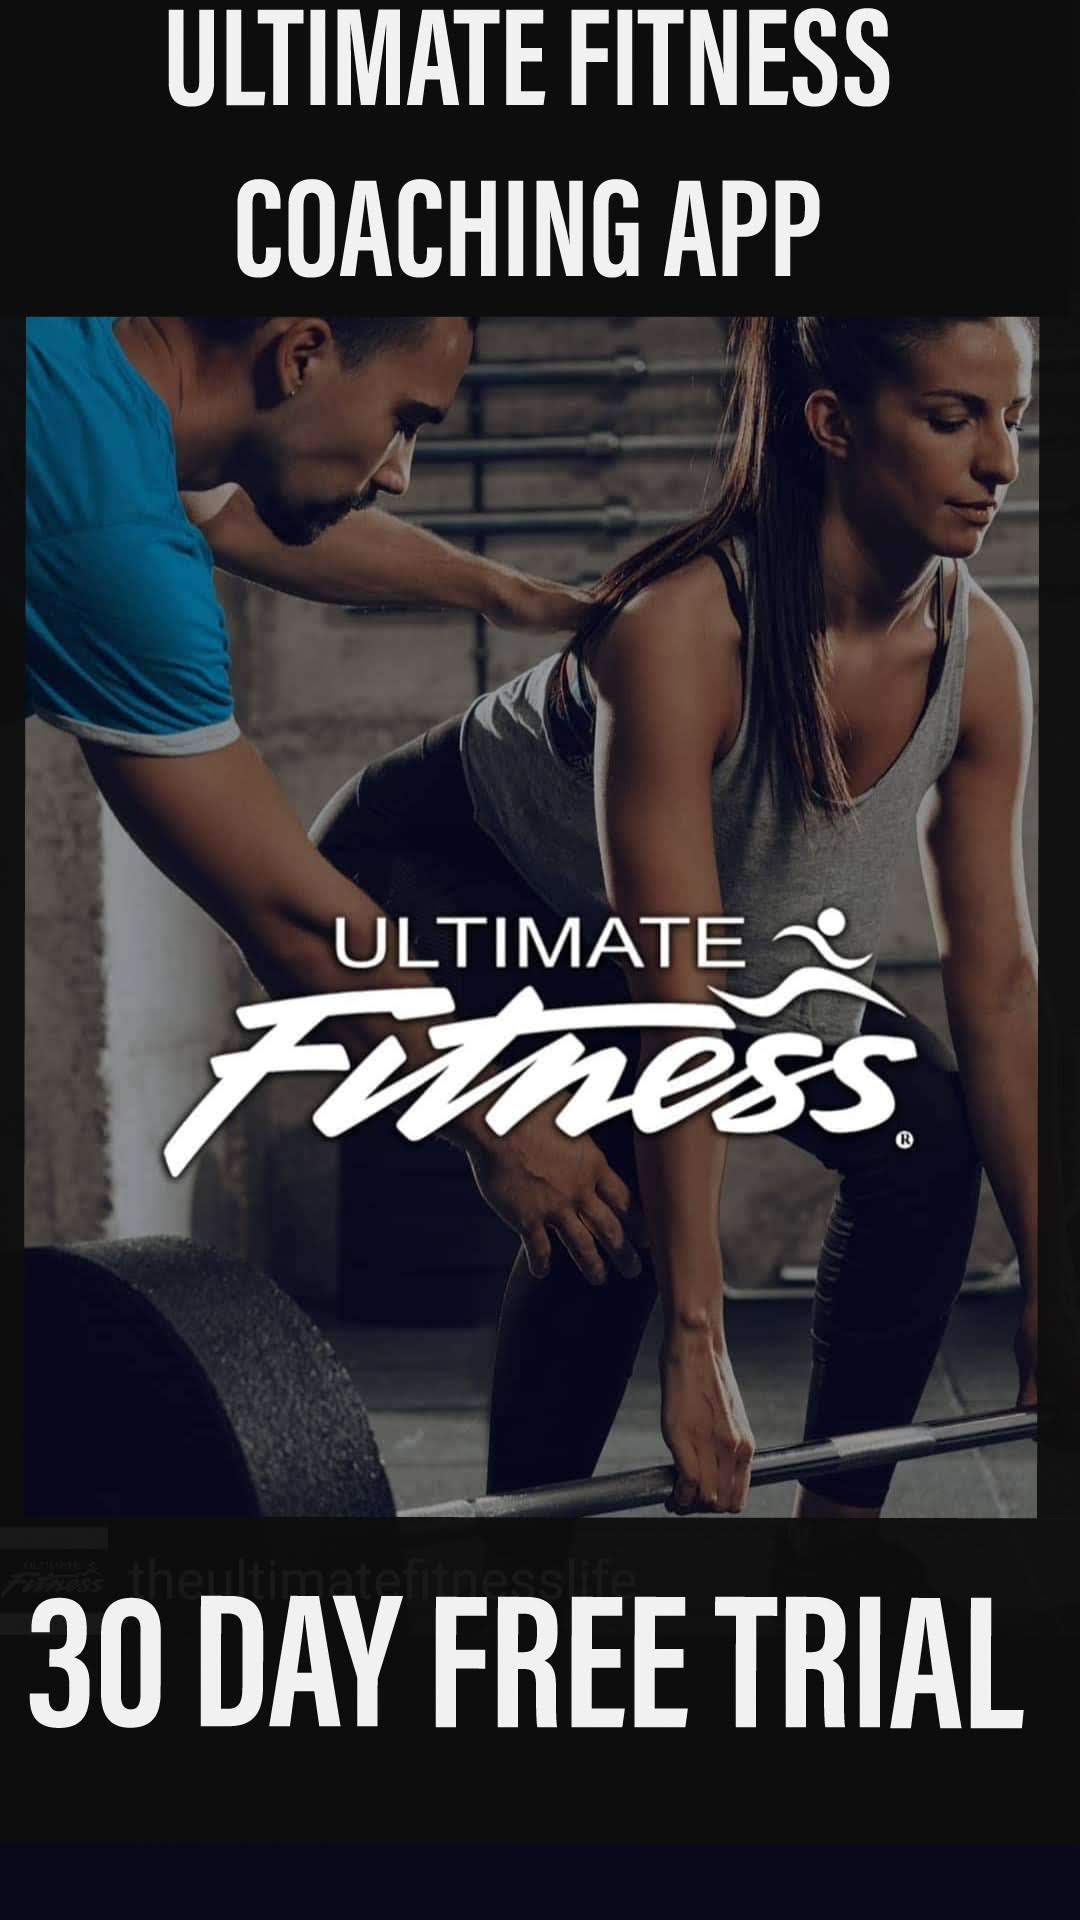 ULTIMATE FITNESS COACHING